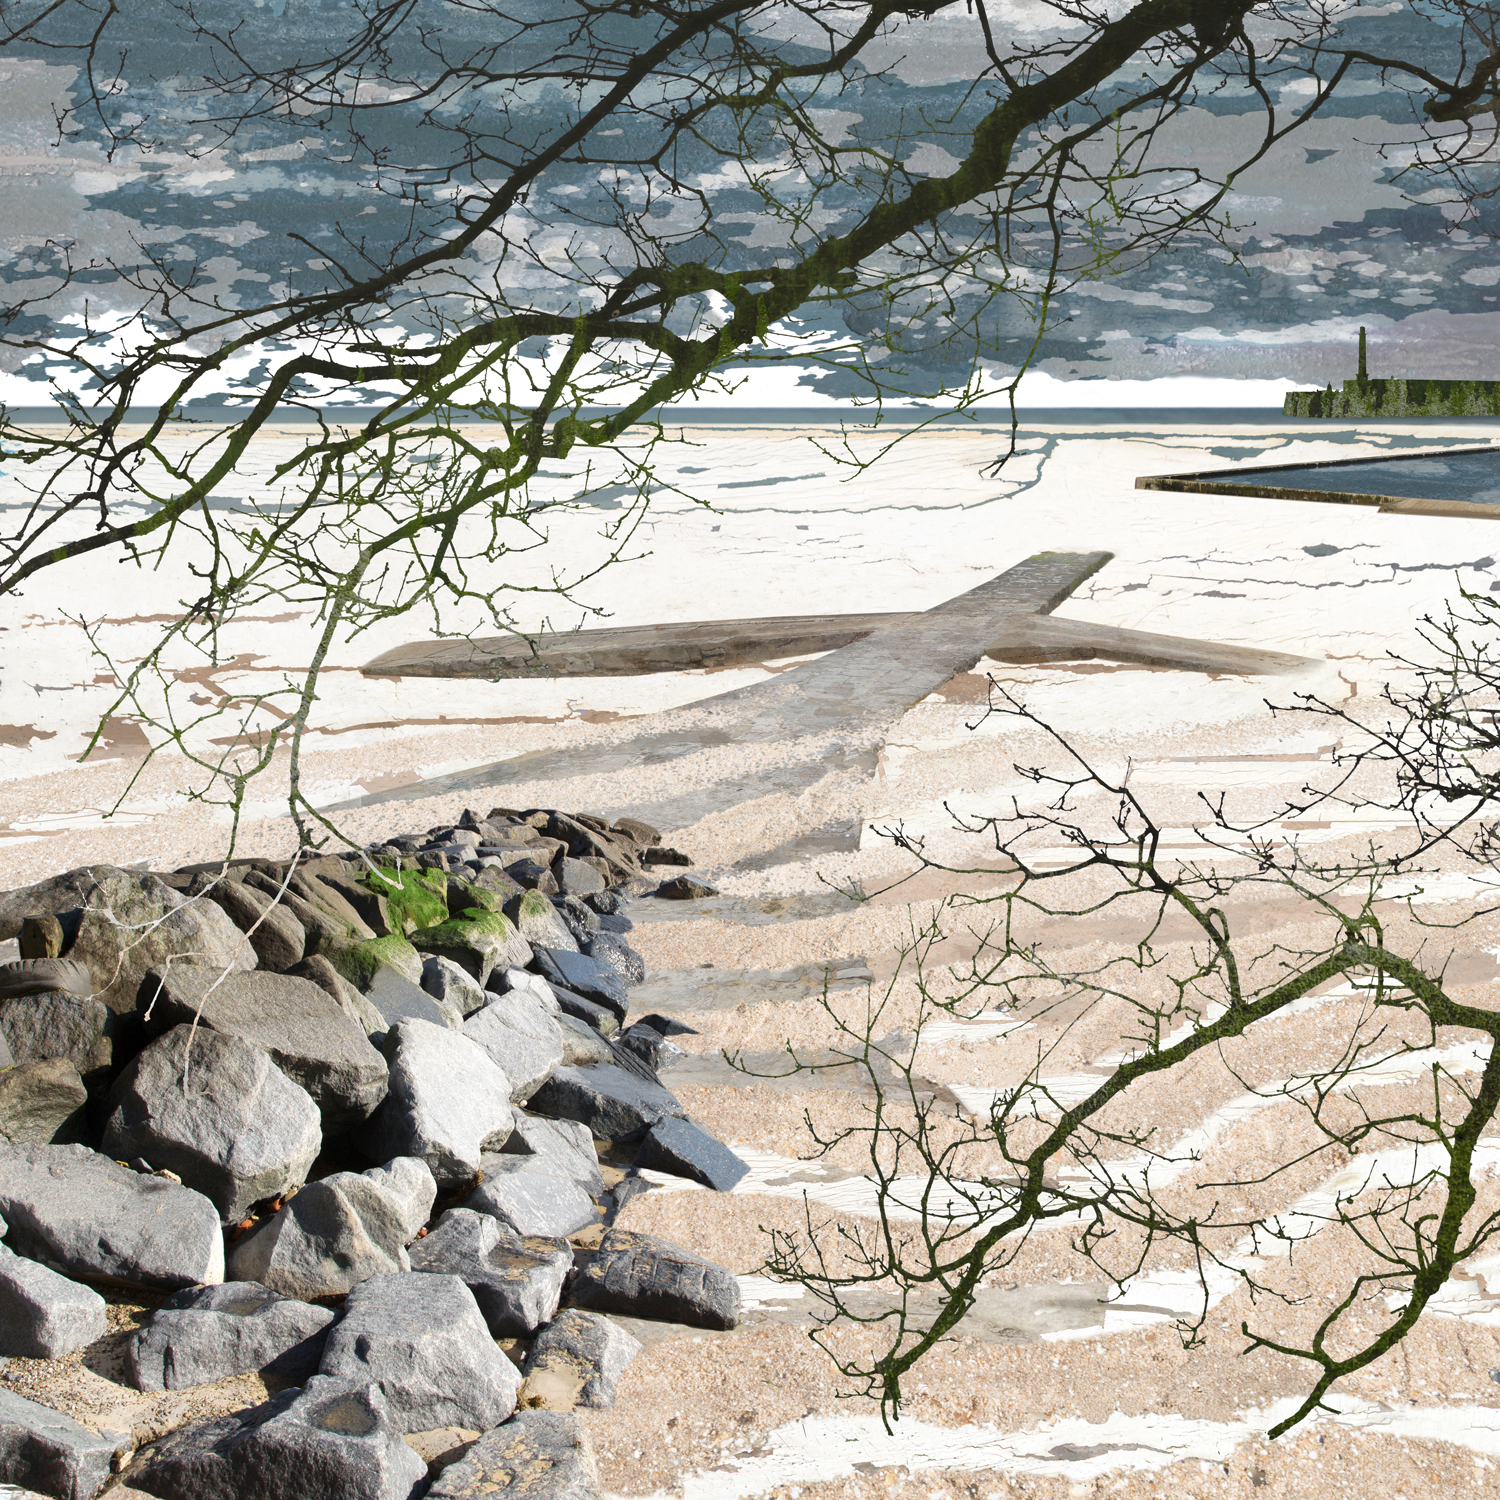 Claire Gill, Artist, Digital Photomontage, The Wasteland by TS Eliot, The Burial of the Dead, On Margate Sands, Lombard Street Gallery, The Wasteland, TS Eliot, Photomontage, Limited Edition Print, Margate, sea